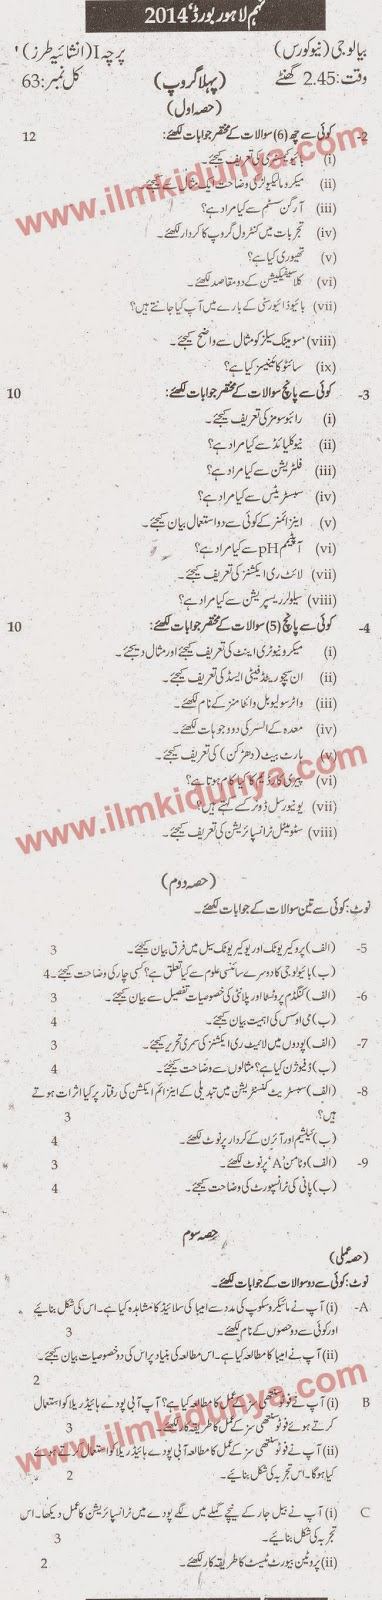 Past Papers 2014 Lahore Board 9th Class Biology Subjective Group 1